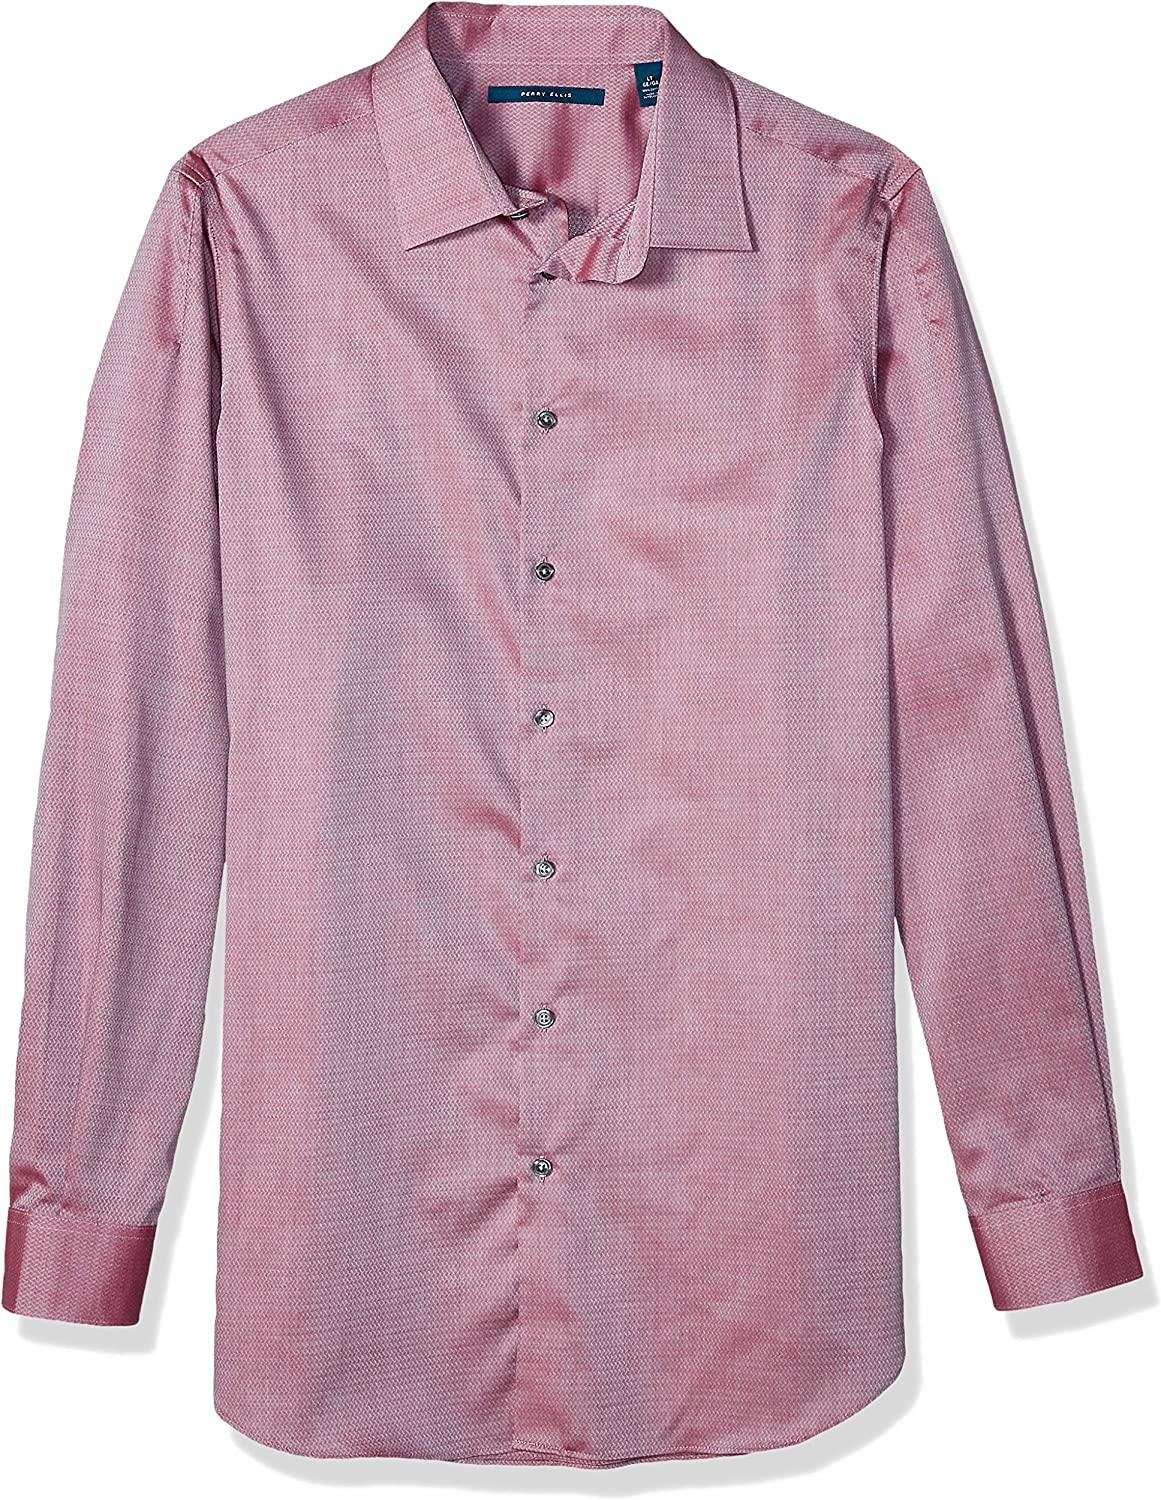 Perry Ellis Men's Big and Tall Dobby Solid Long Sleeve Button-Down Shirt